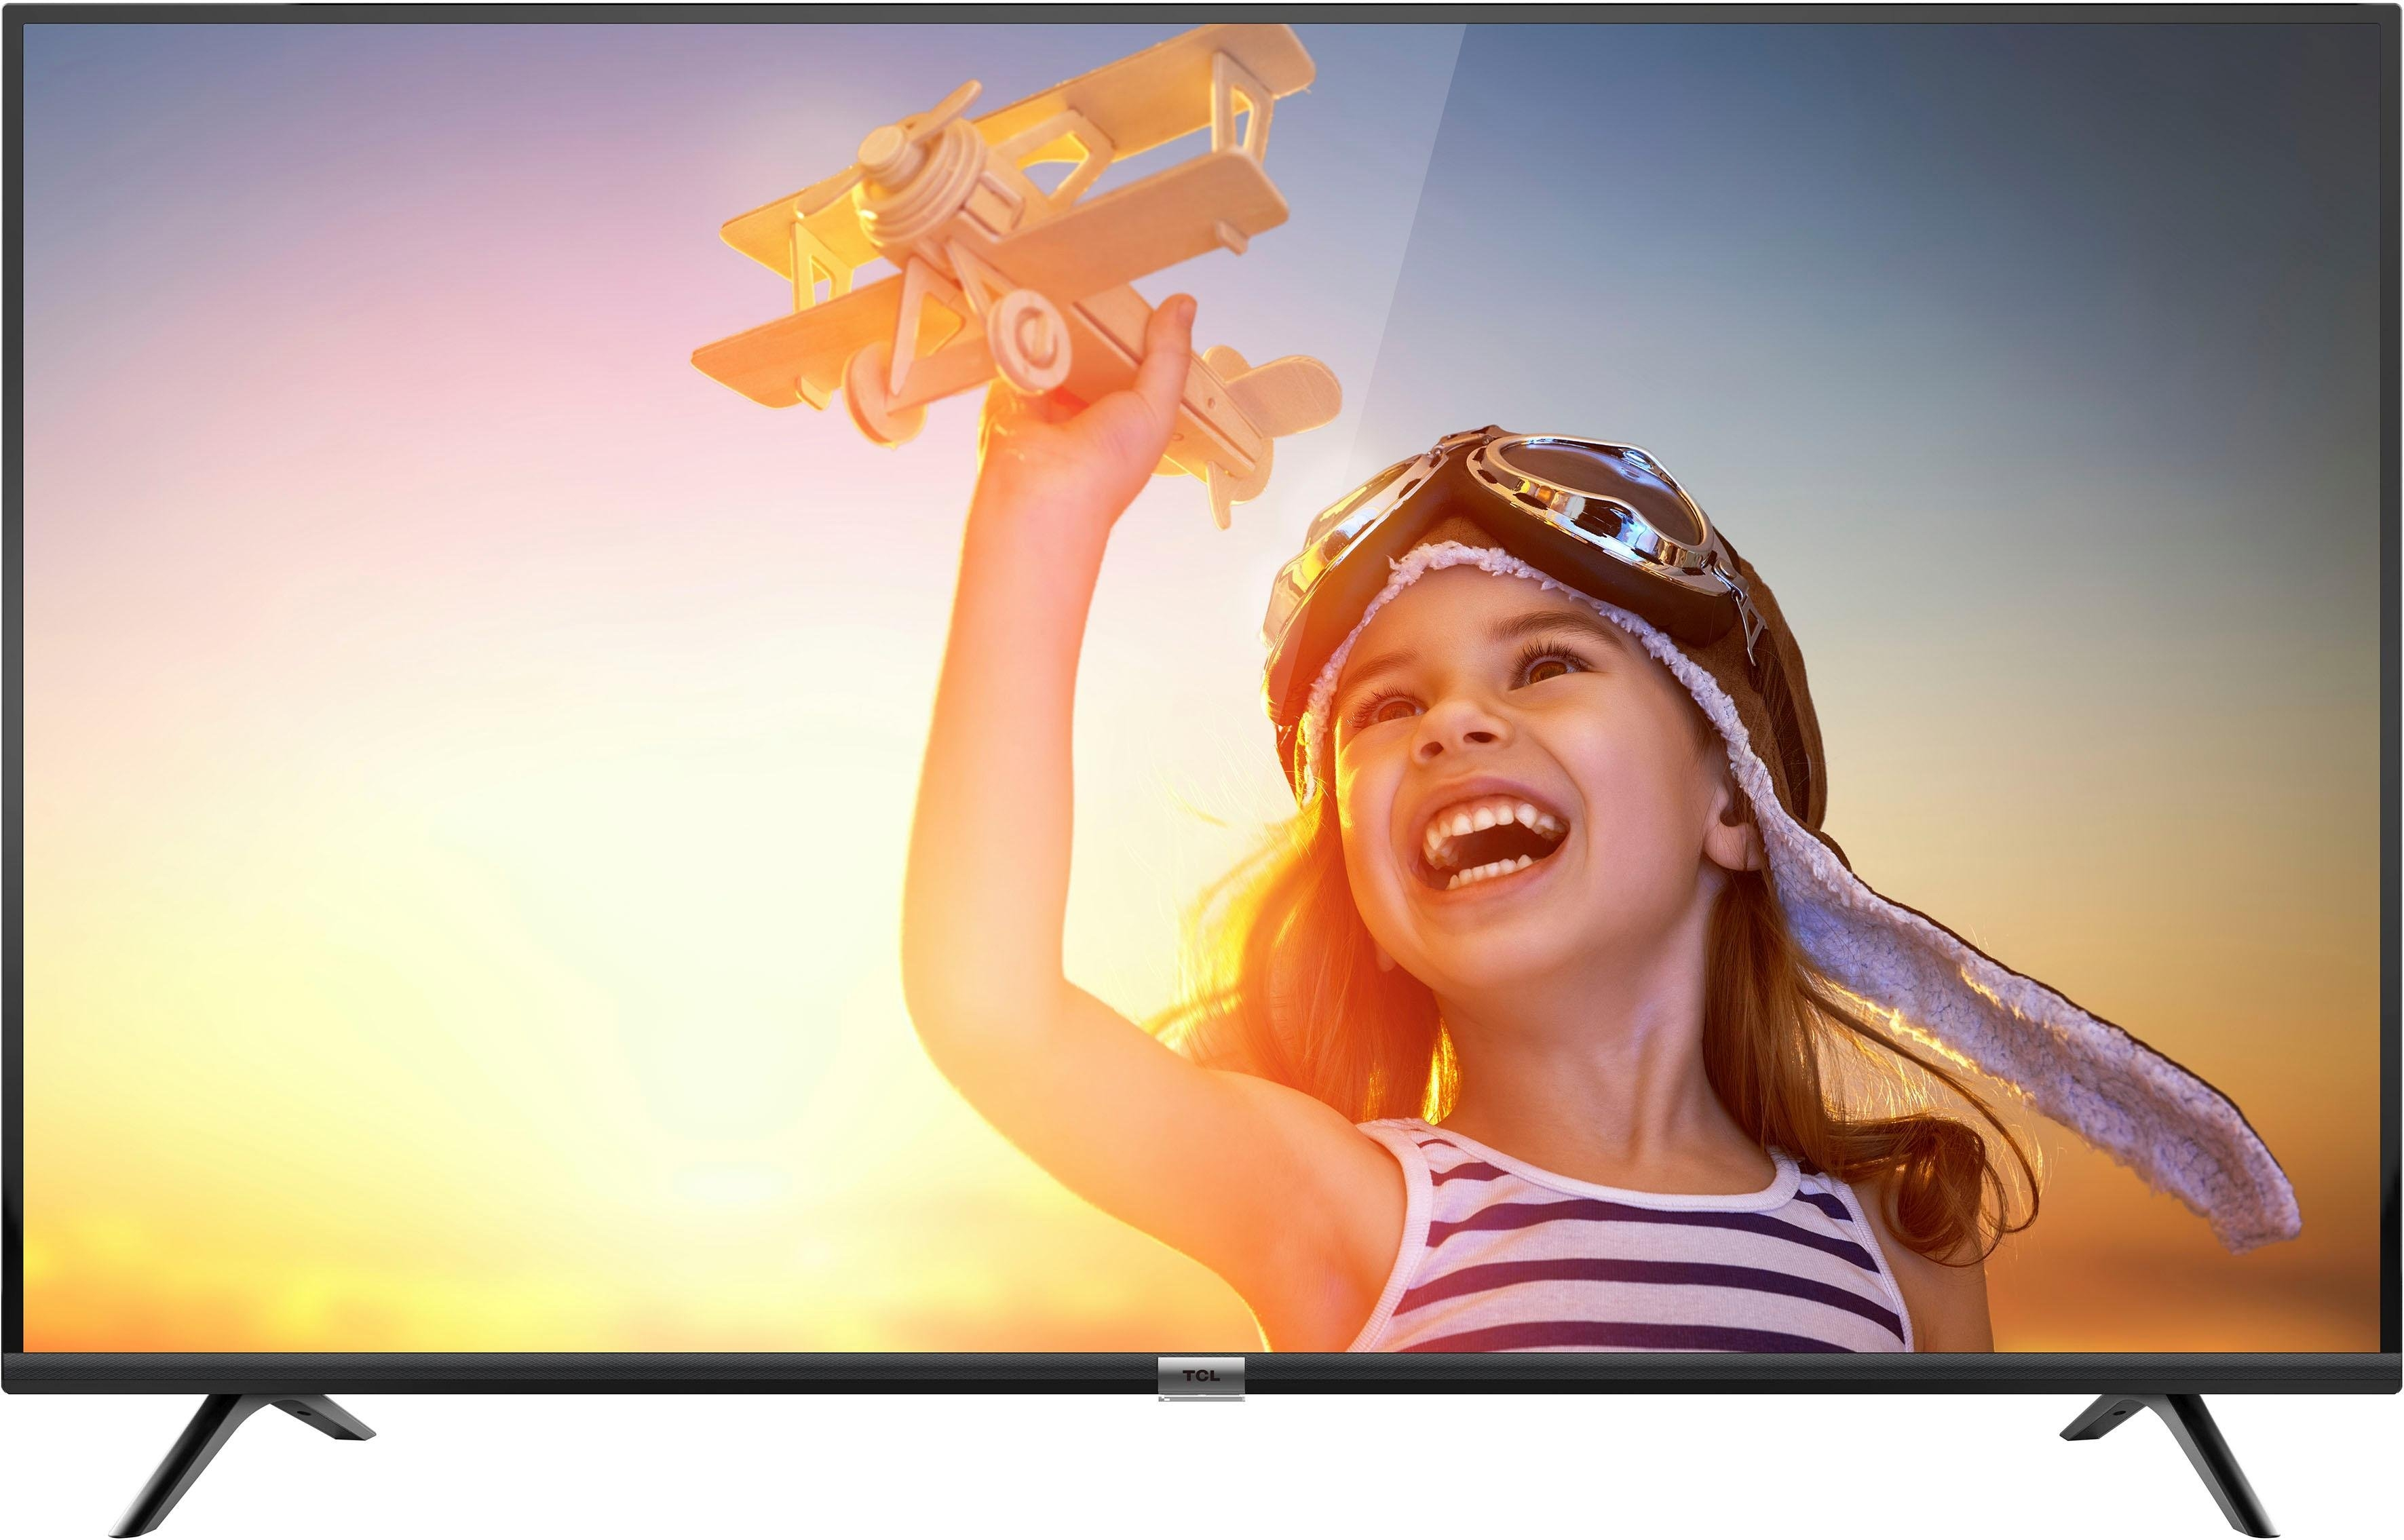 Tcl 65DB600 led-tv (164 cm / 65 inch), 4K Ultra HD, smart-tv bij OTTO online kopen